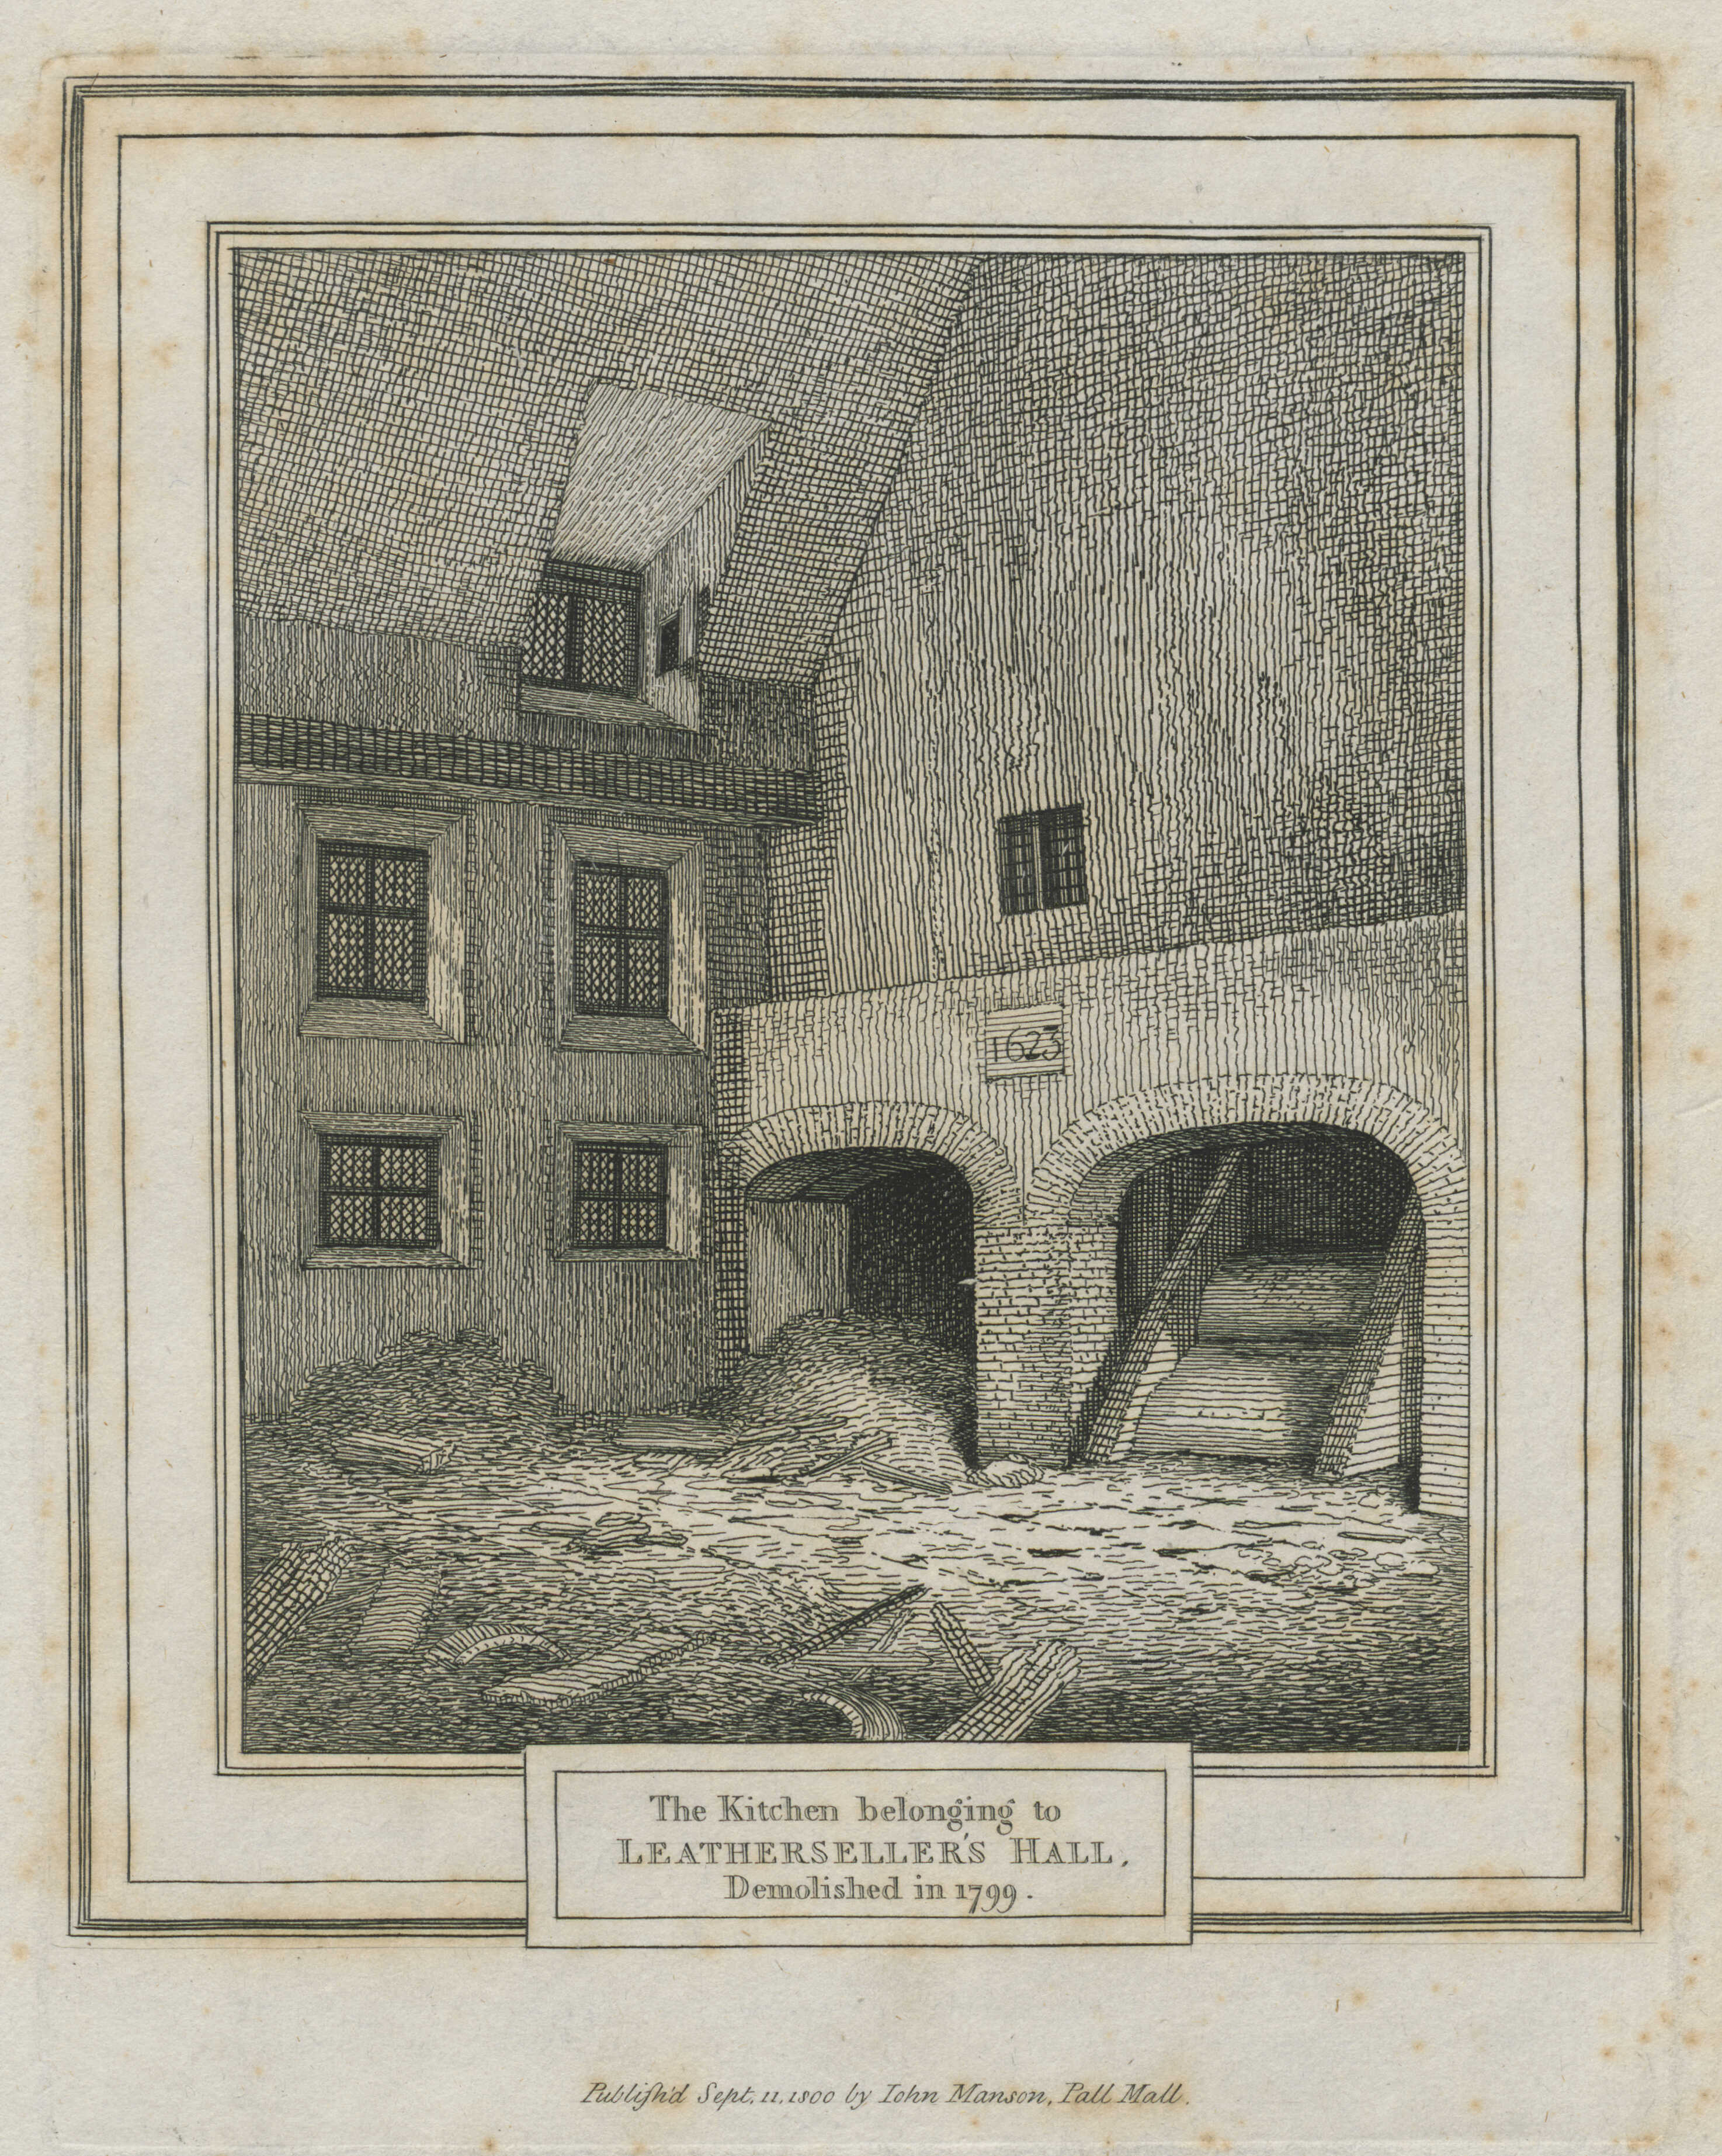 85-the-kitchen-belonging-to-leathersellers-hall-demolished-in-1799